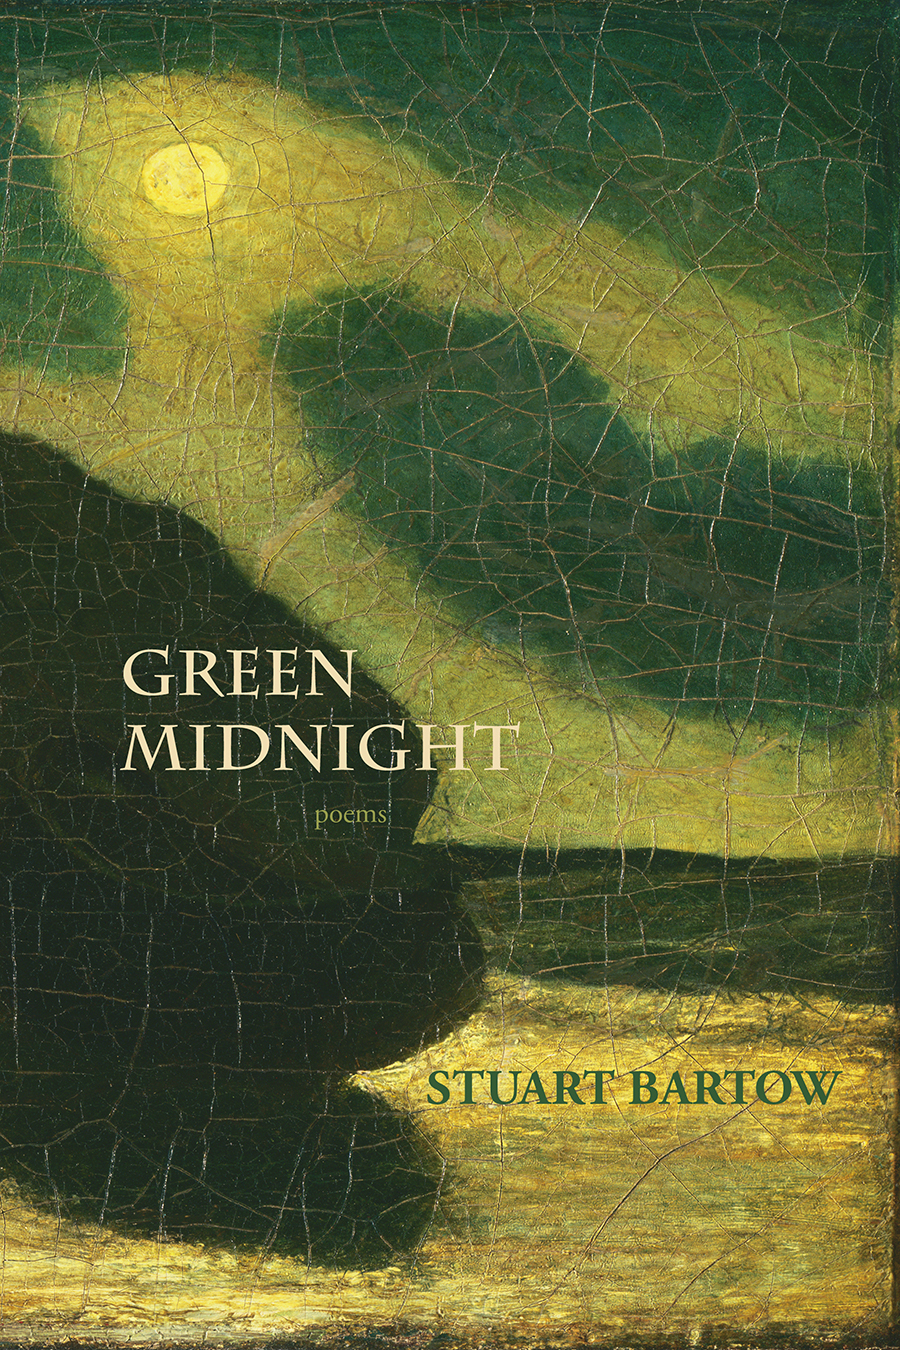 Green Midnight